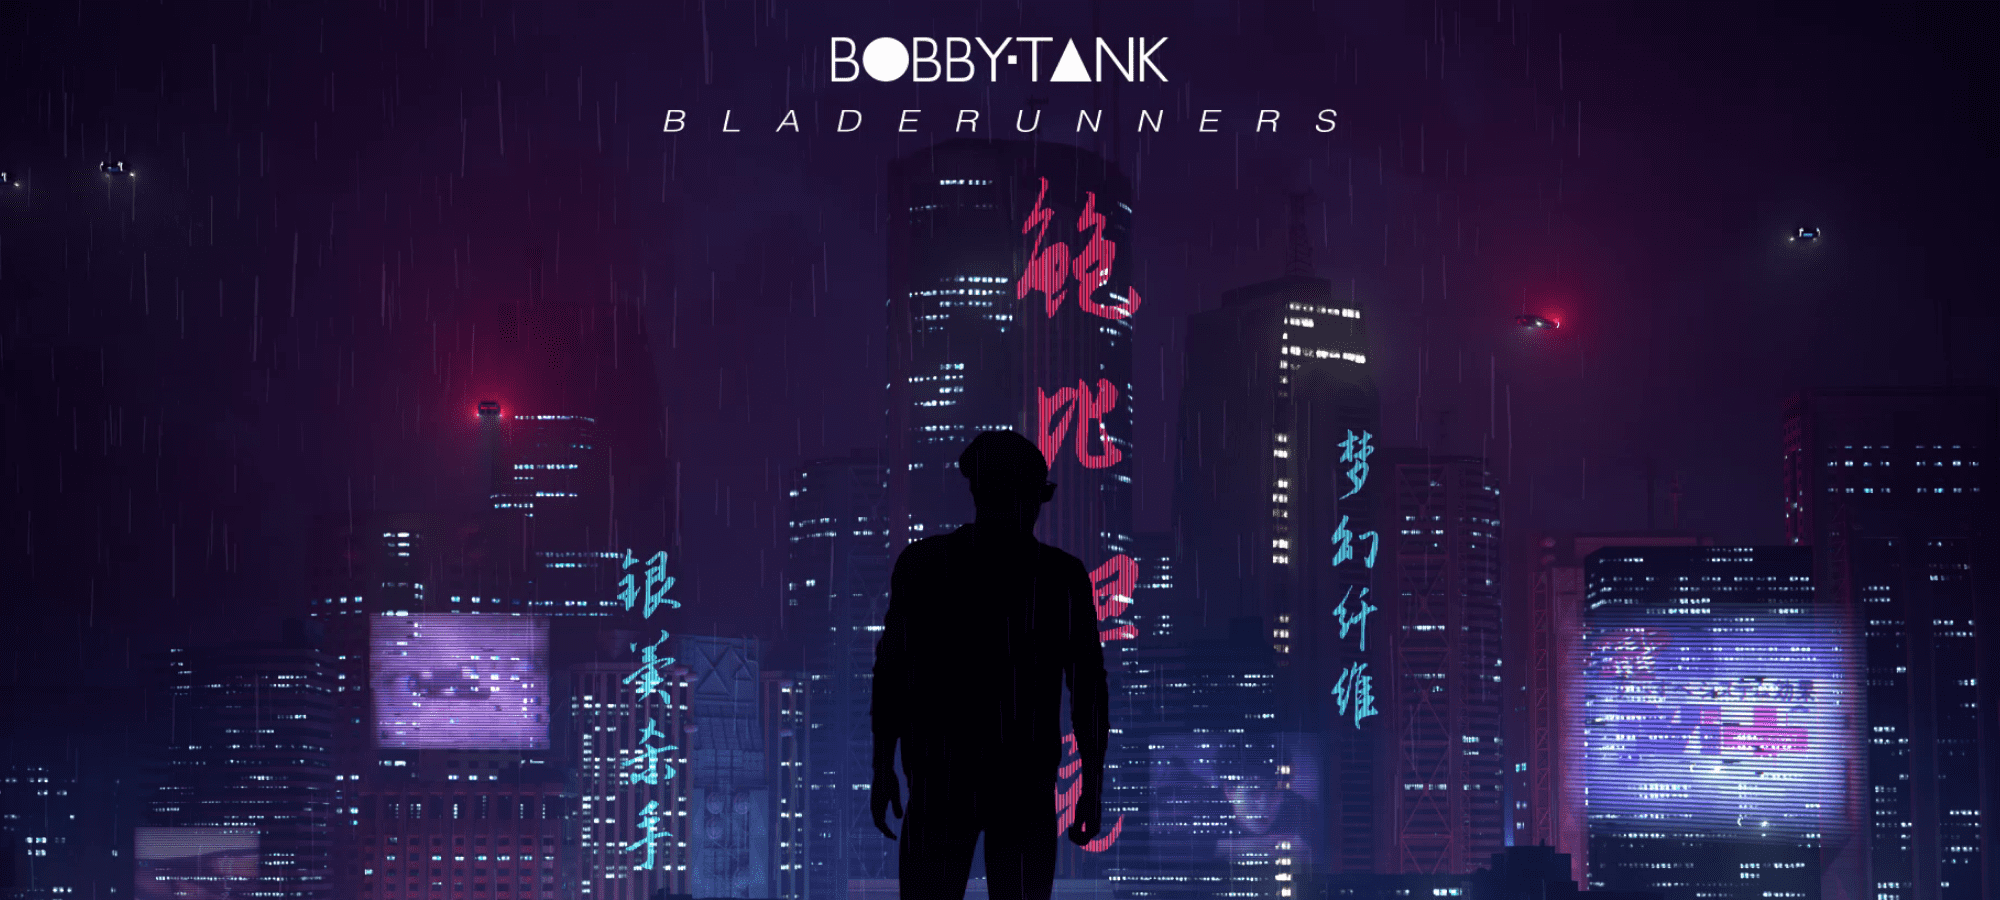 Bobby Tank new EP Bladerunners - electronic music ambient slide